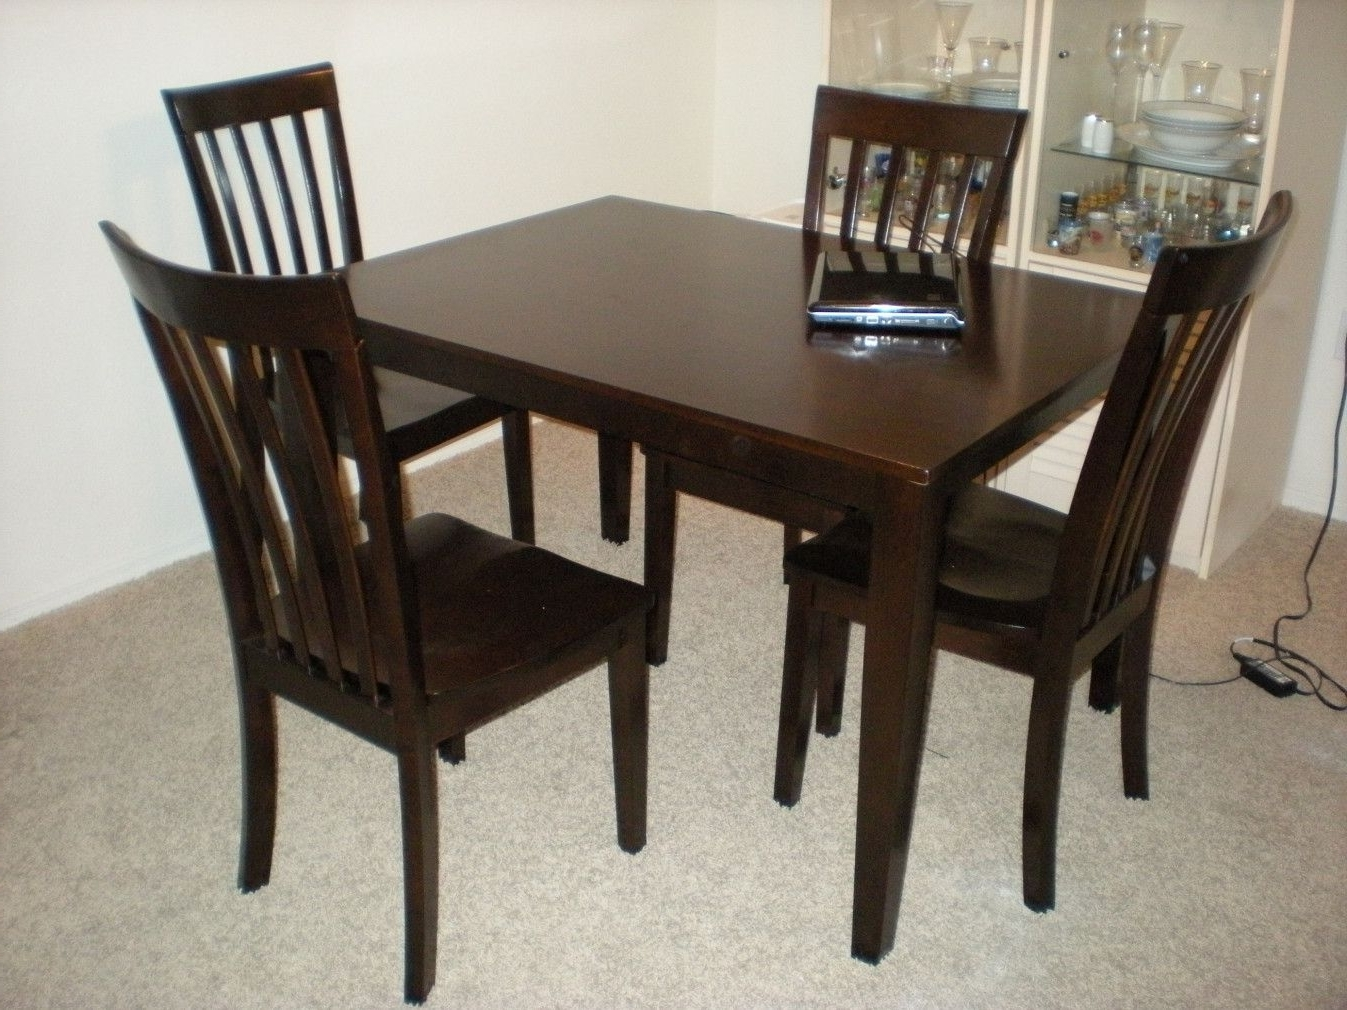 Dark Wooden Dining Tables Within 2017 2018 Black Wooden Dining Table And Chairs – Diy Modern Furniture (View 6 of 25)